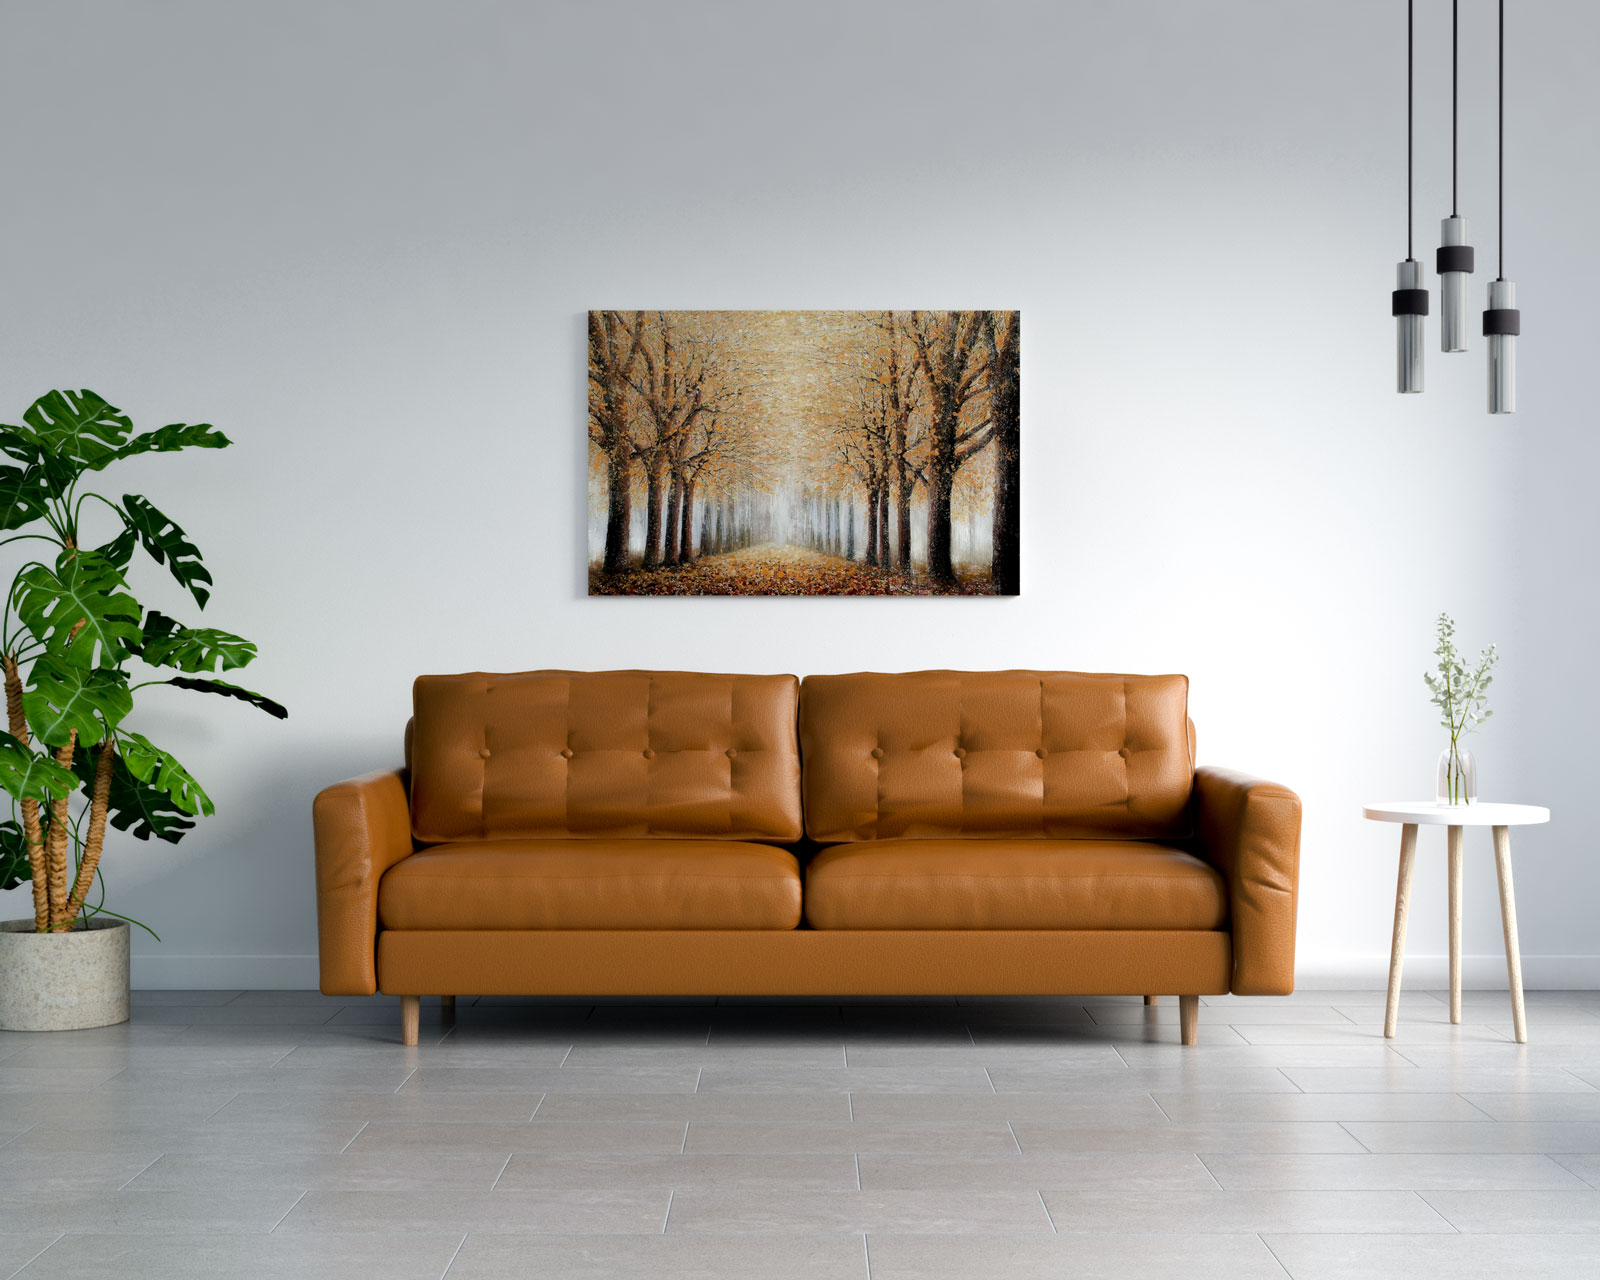 Brown leather couch with gray floors